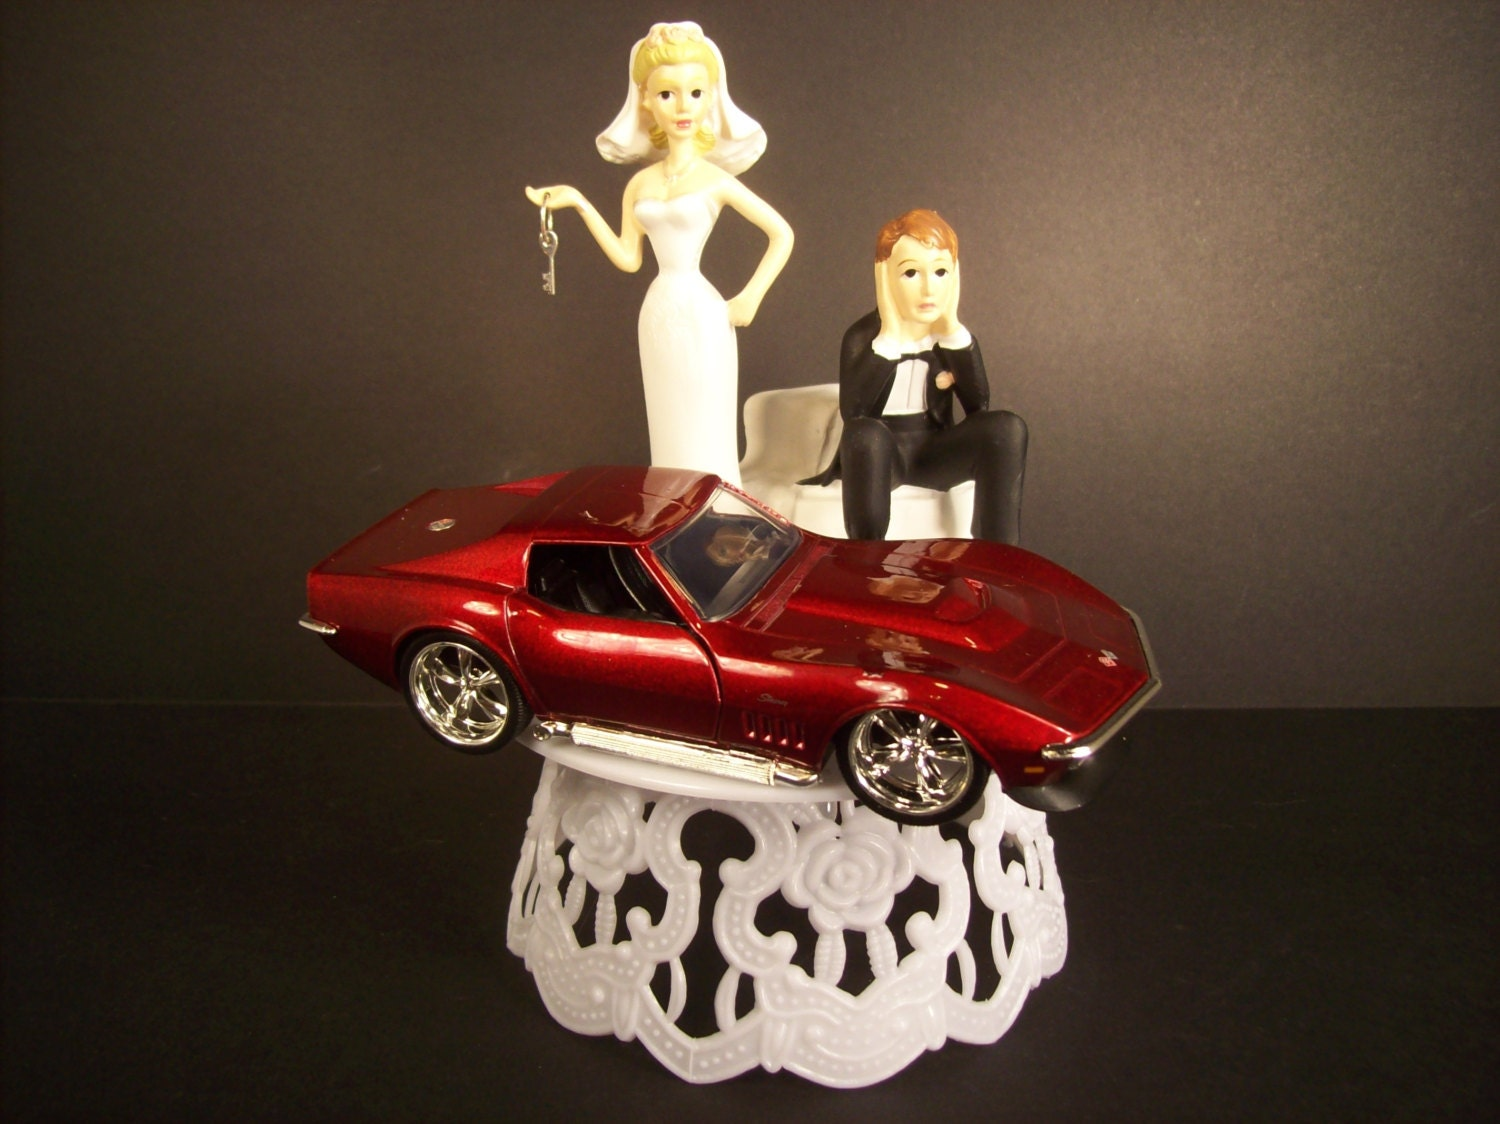 Got the key Funny Wedding CAKE TOPPER w Red 1969 Corvette